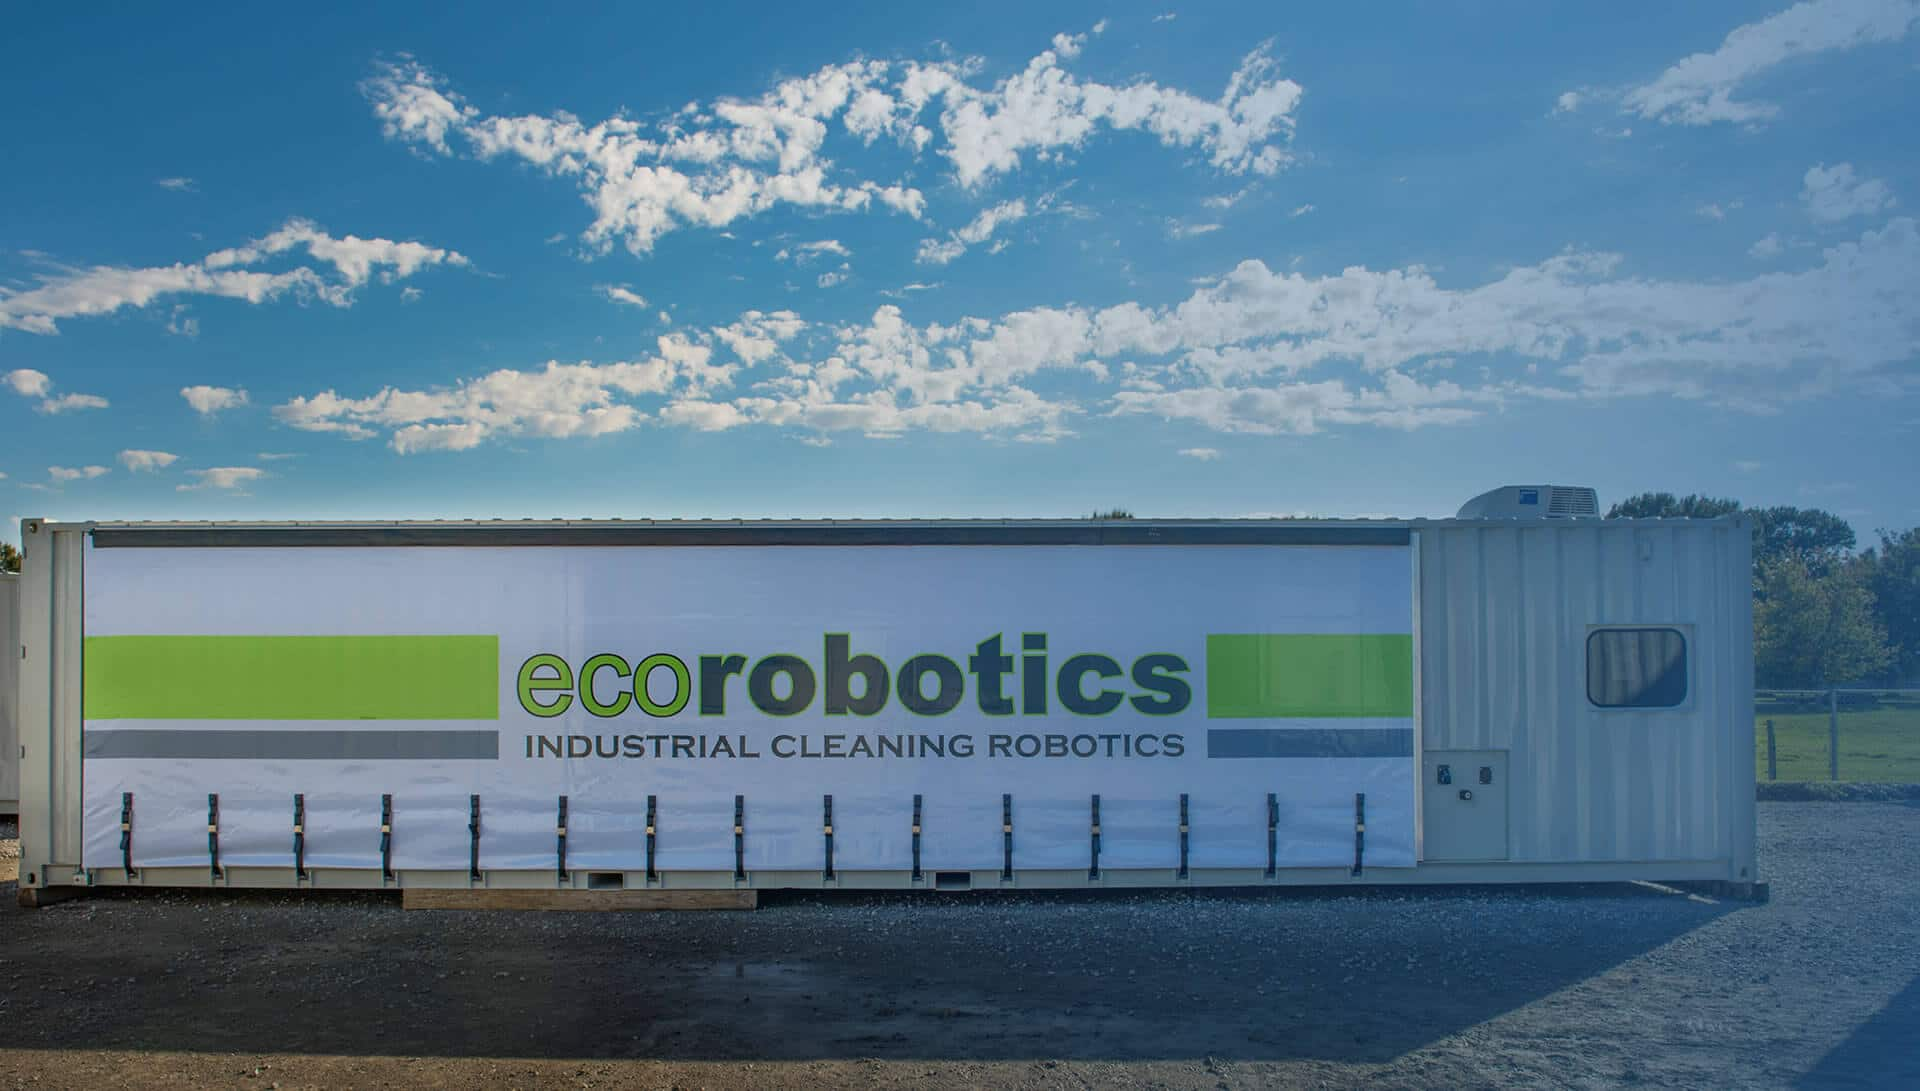 Ecorobotics: Industrial Cleaning Services Container Building